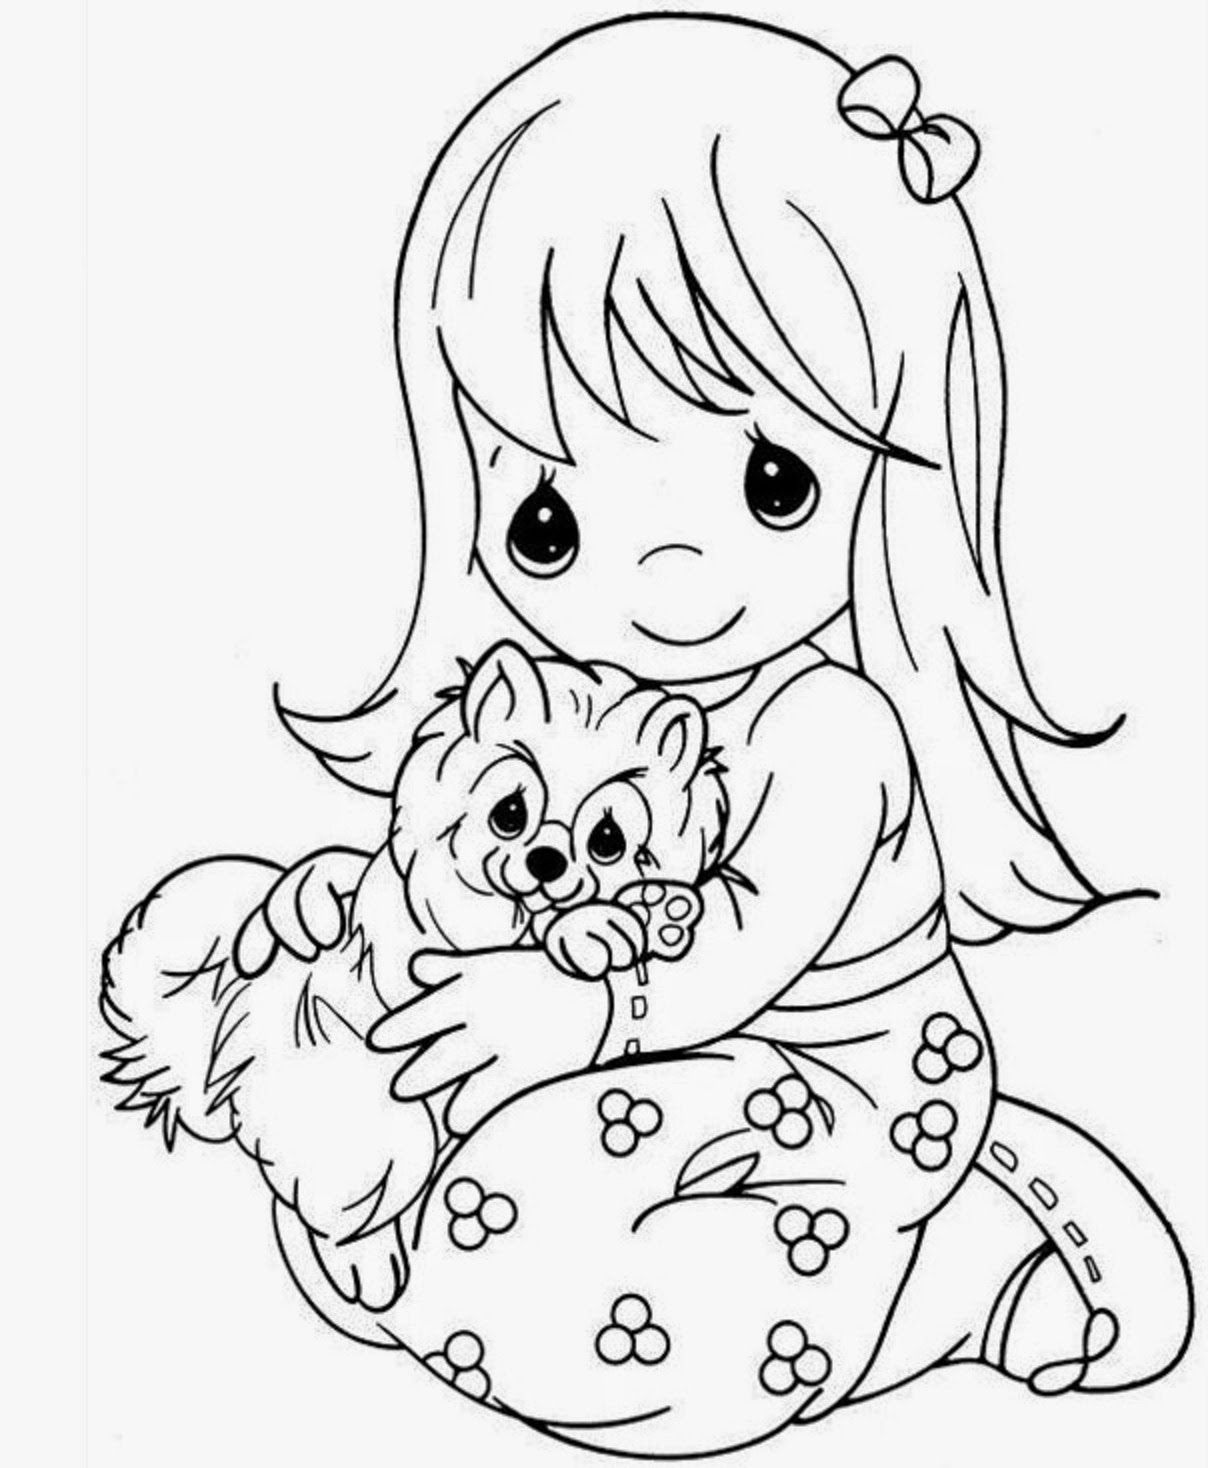 coloring pages for kids girls coloring pages for girls best coloring pages for kids pages kids coloring girls for